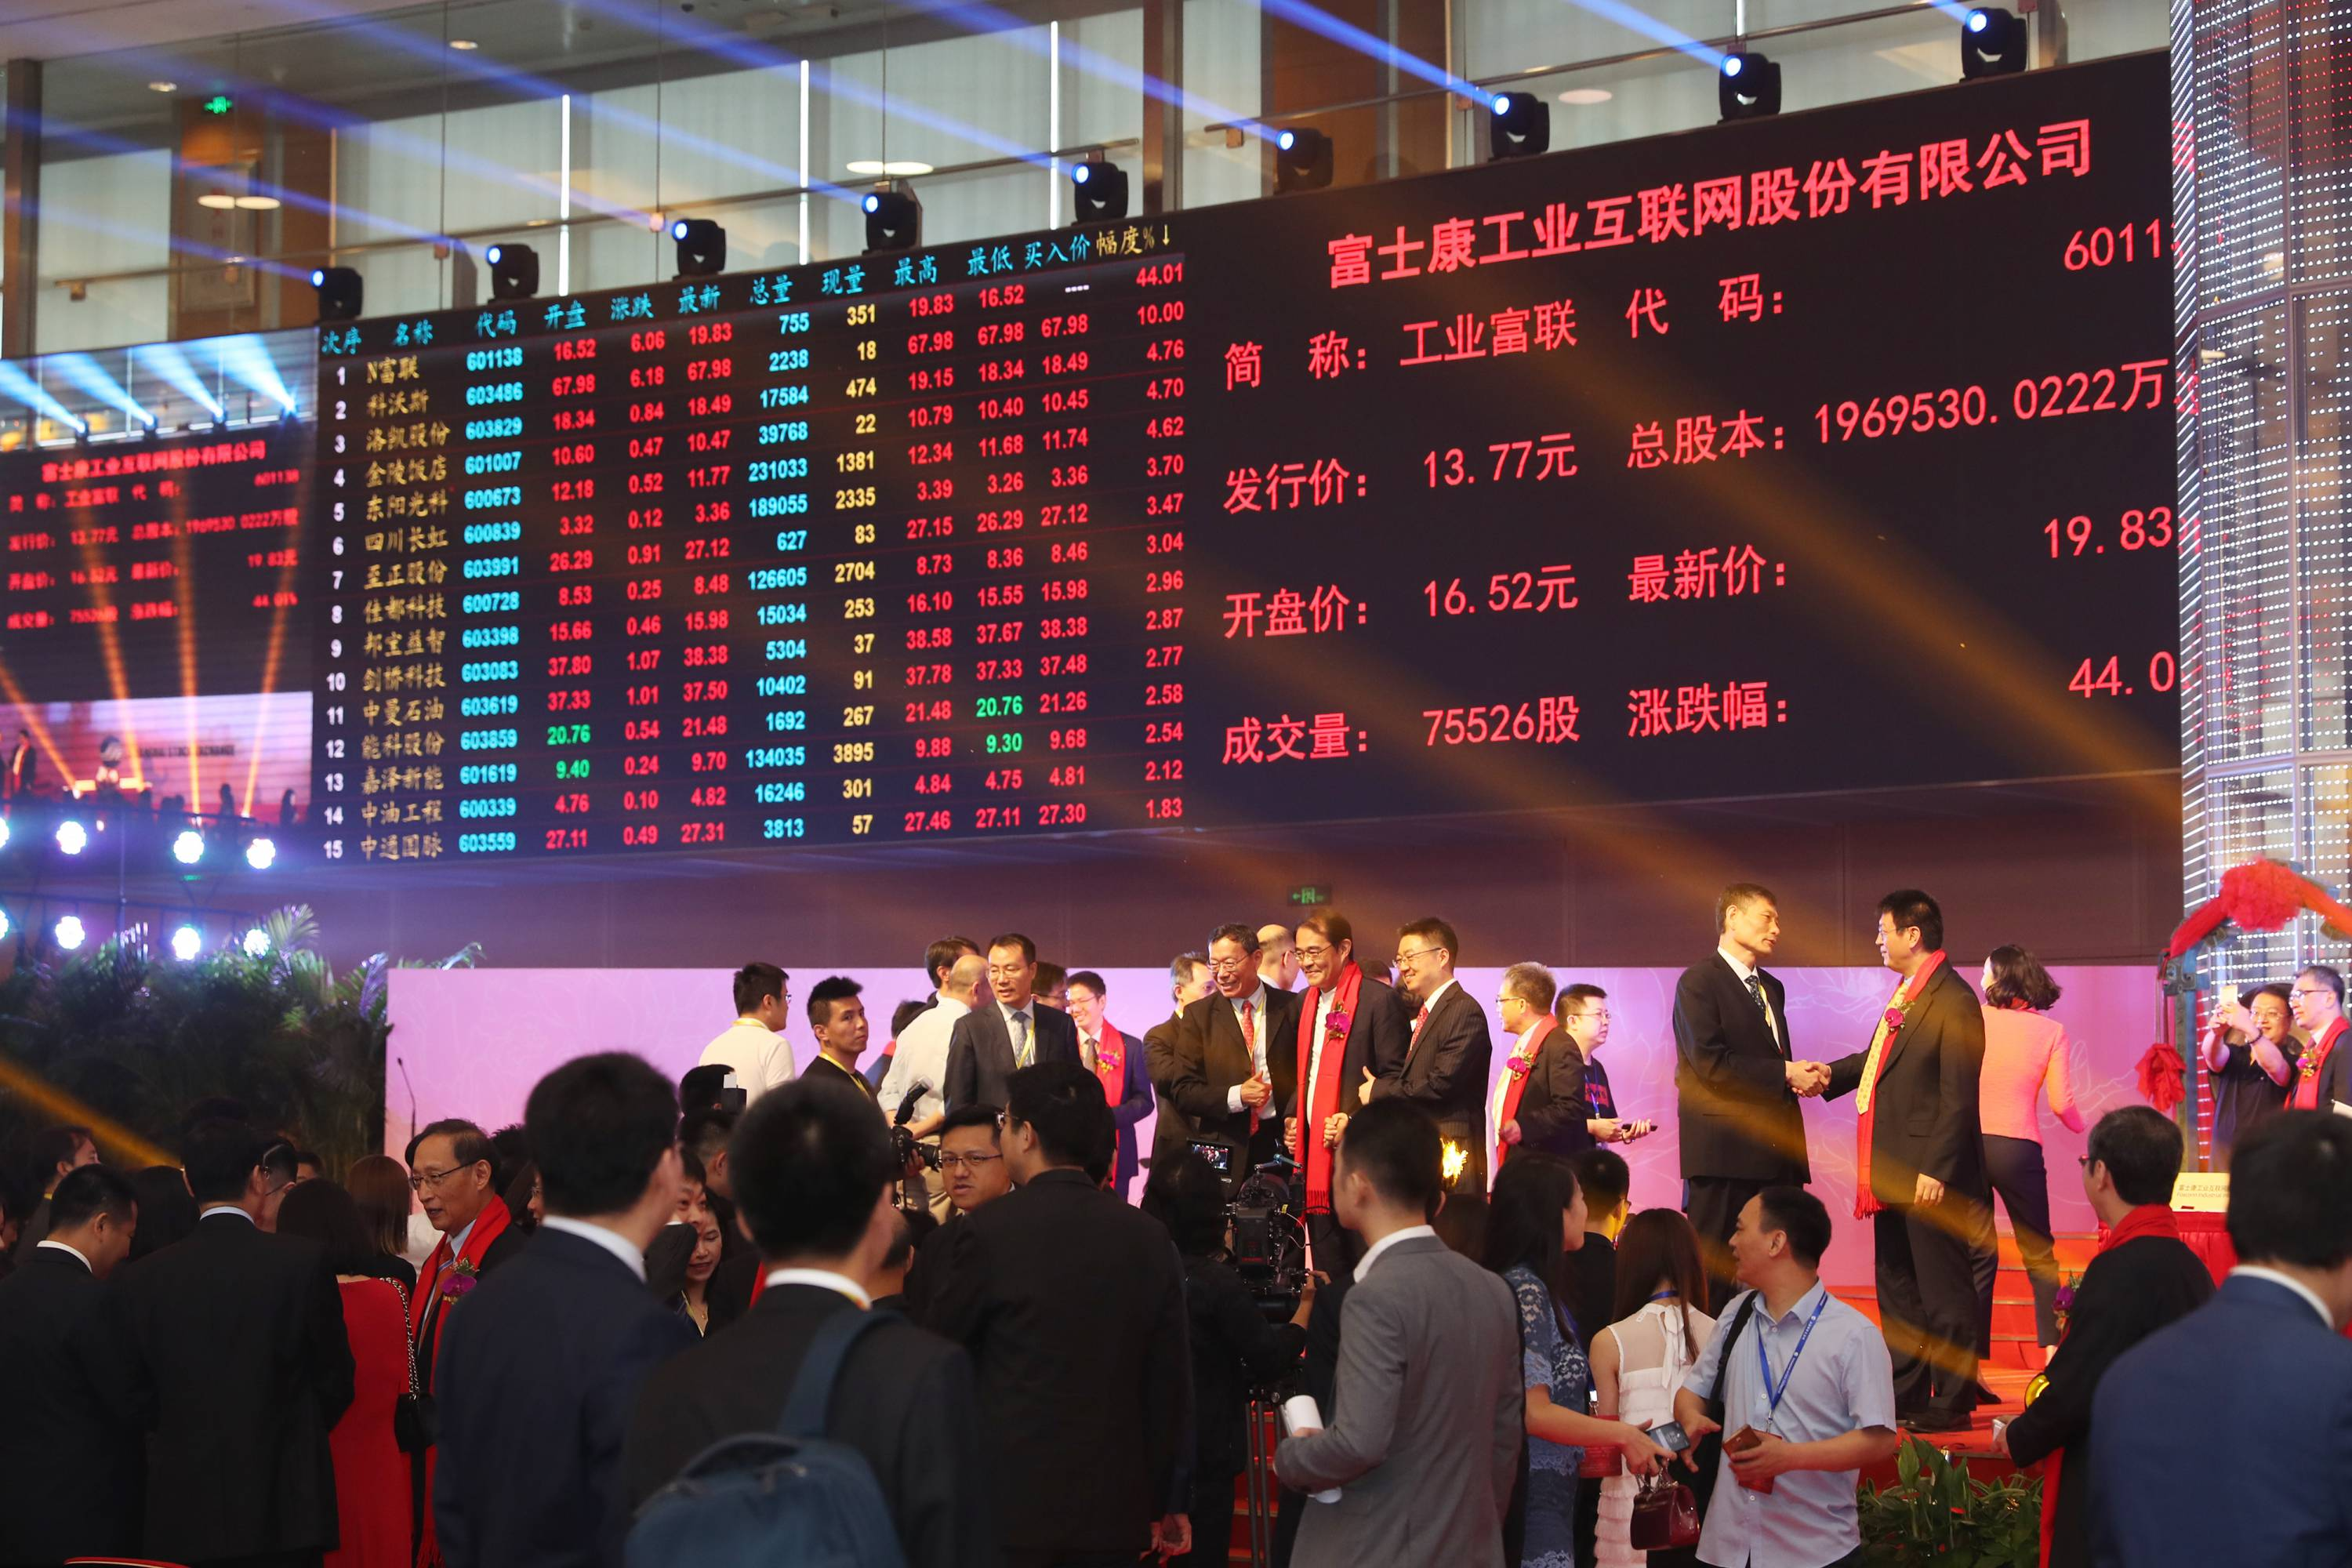 Foxconn Industrial Internet Begins Trading On The Shanghai Stock Exchange